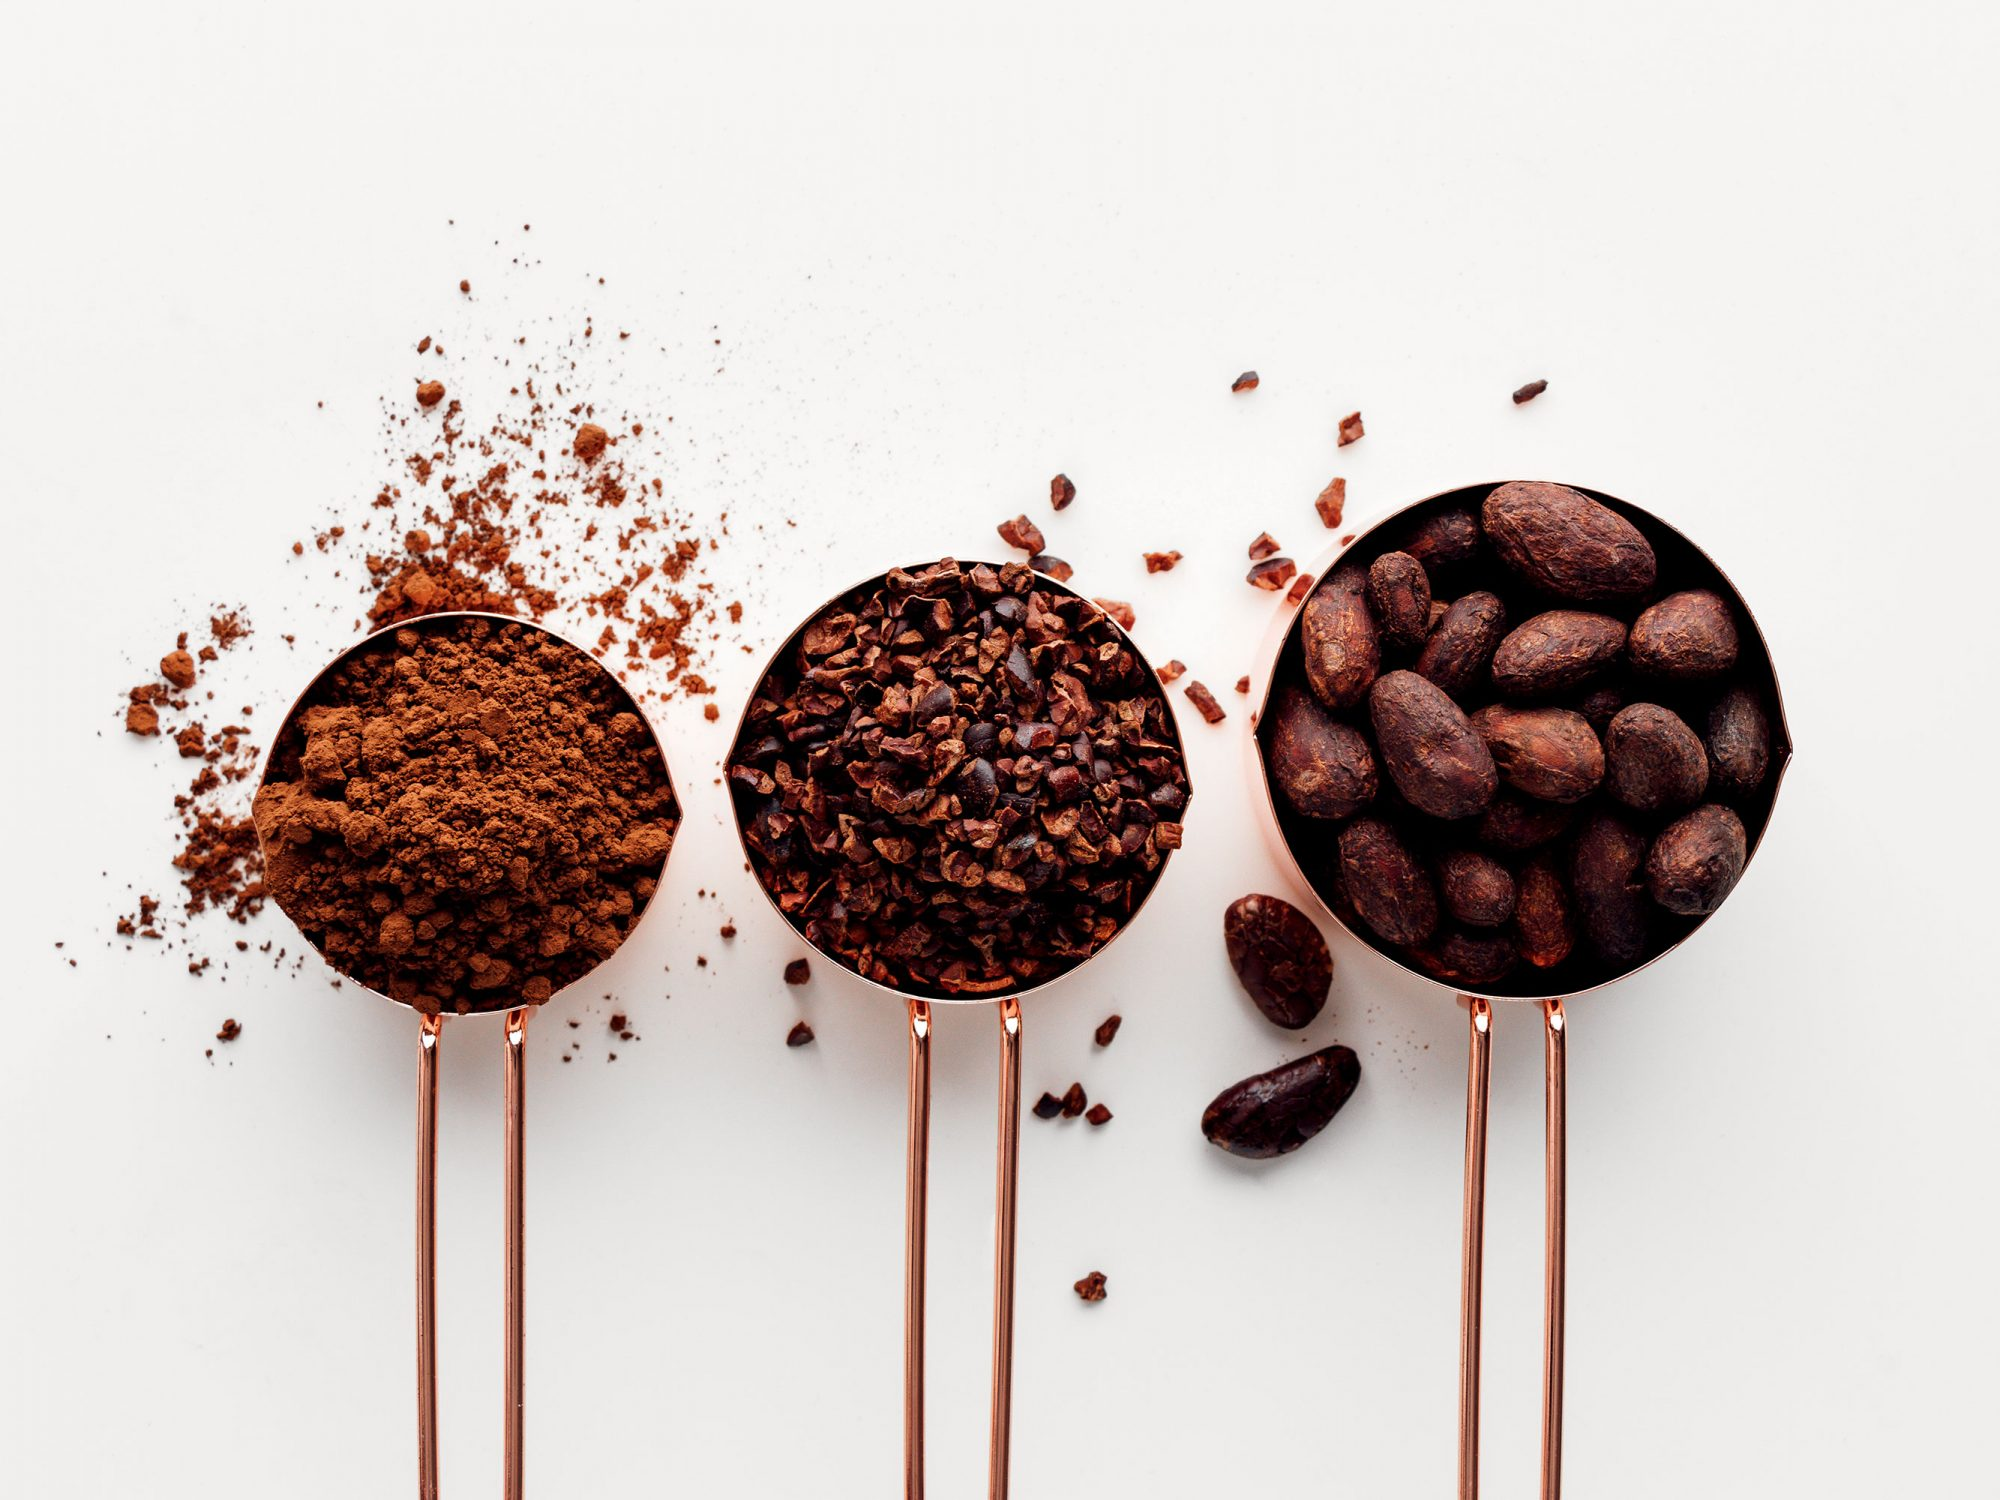 Cocoa beans, nibs, and powder measuring cups